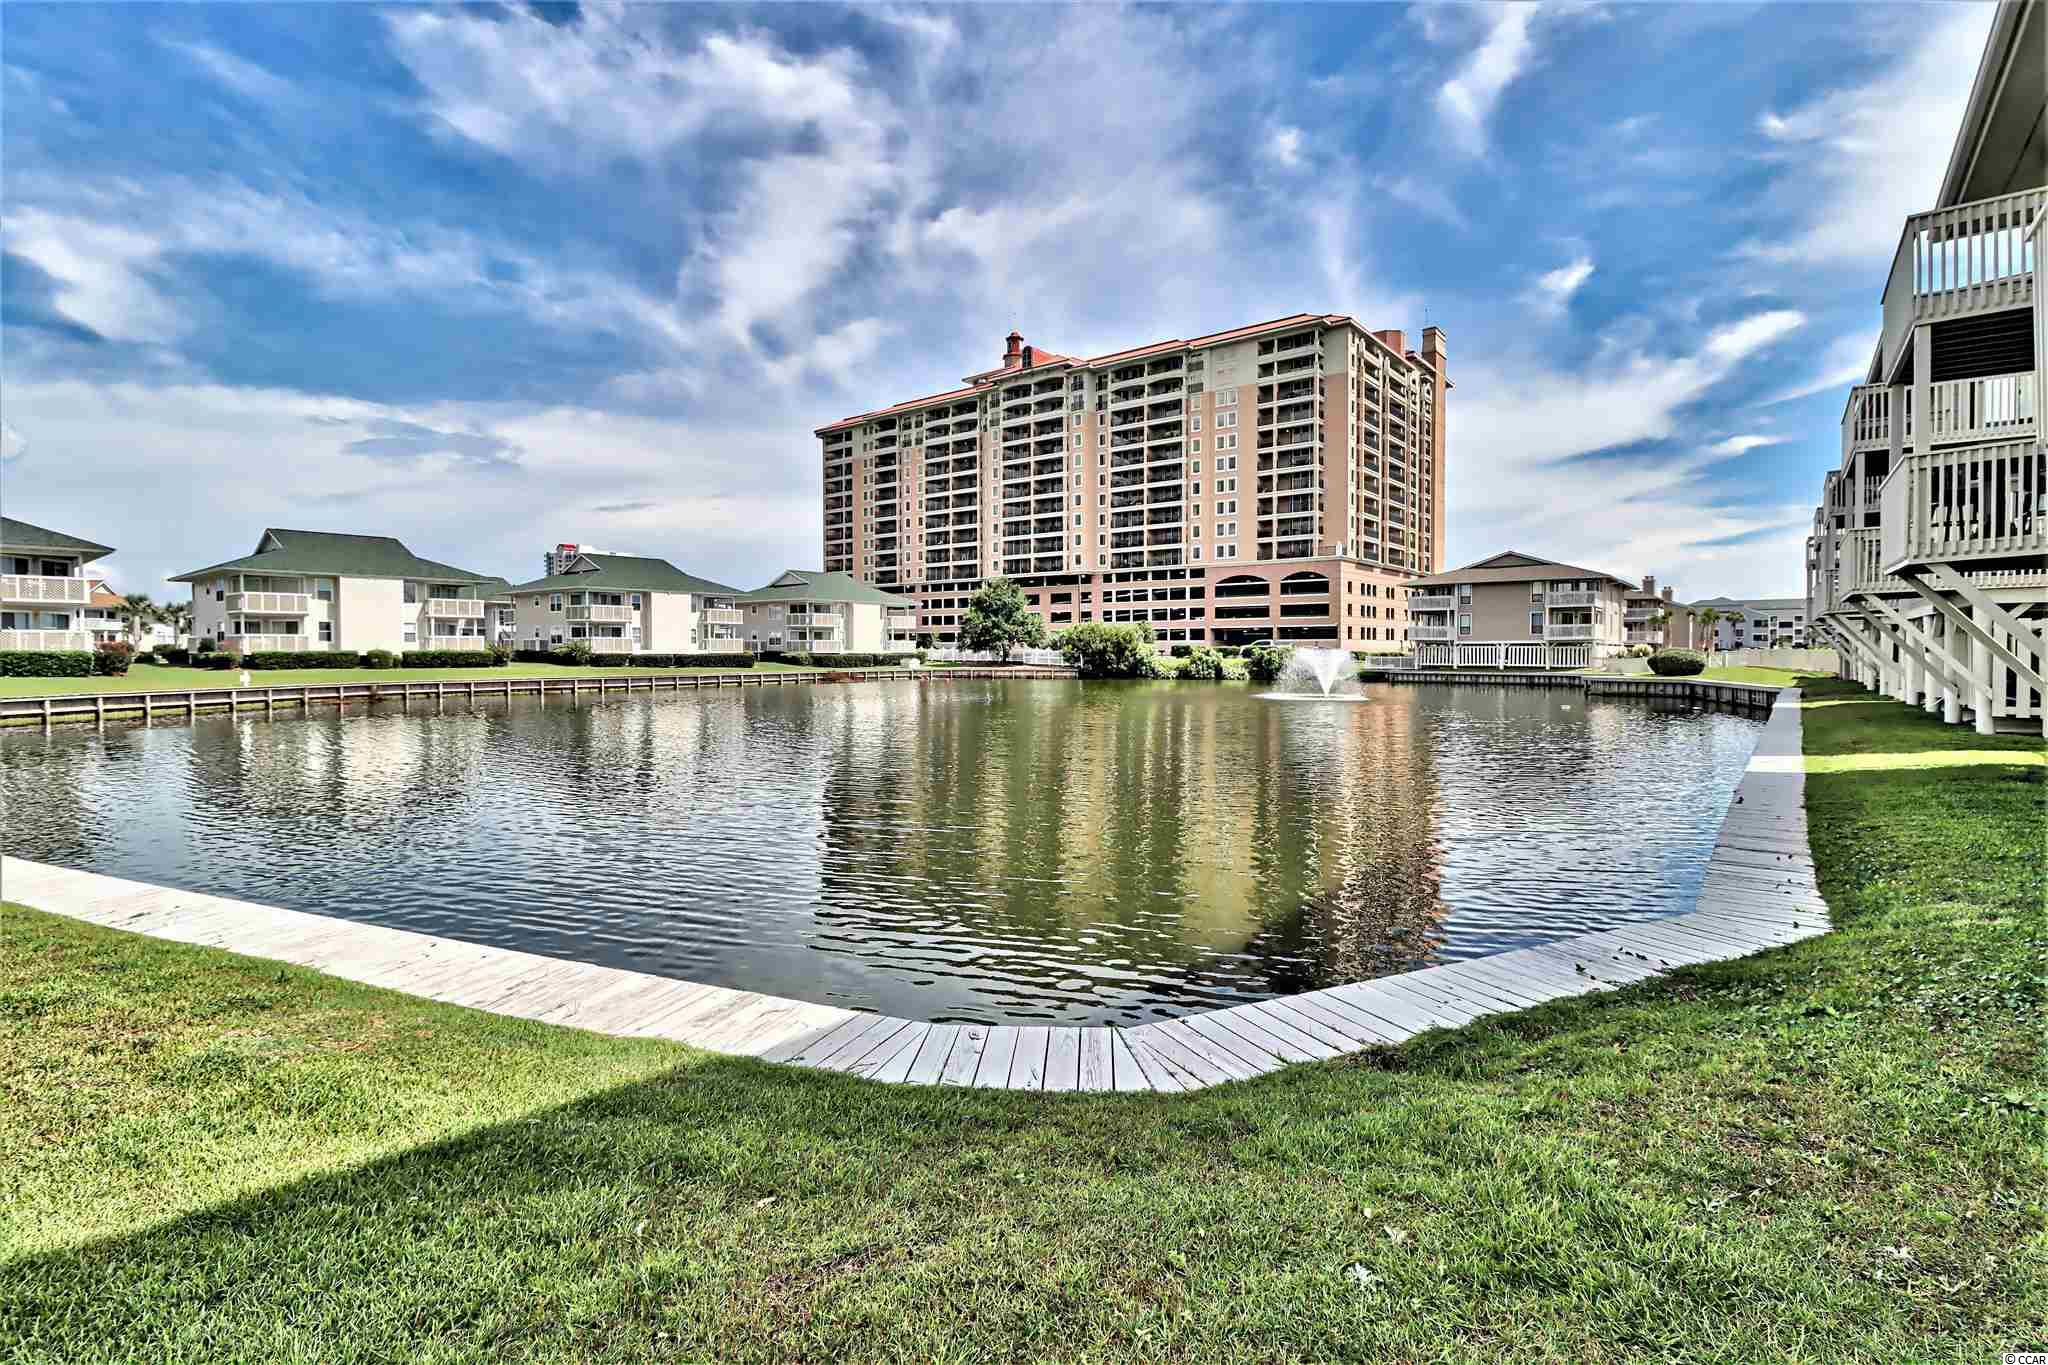 Great opportunity to get into one of North Myrtle Beach's most popular 2nd row luxury high rise resorts. Tilghman Beach and Golf Resort is located directly across the street from a major city beach access and crosswalk. The building features an abundance of both indoor and outdoor amenities that appeal to today's vacationers, families and guests. Heated pools, hot-tubs, lazy river, exercise room, sauna, on-site bar and grill, huge sunning patio, children's water-play area.. the list is endless! Located in then heart of all the activity and fun at the beach, yet this updated condo offers owners and guests plenty of peace and serenity. Breath-taking views of a lake with lit fountain, the Surf Golf Club and golf courses may be enjoyed from the main living area of the condo as well as from a large balcony with access from both the master bedroom and living room. A gorgeous, tree-lined horizon melting into a blue sky in the distance sets the tone for a magical vacation and relaxation.